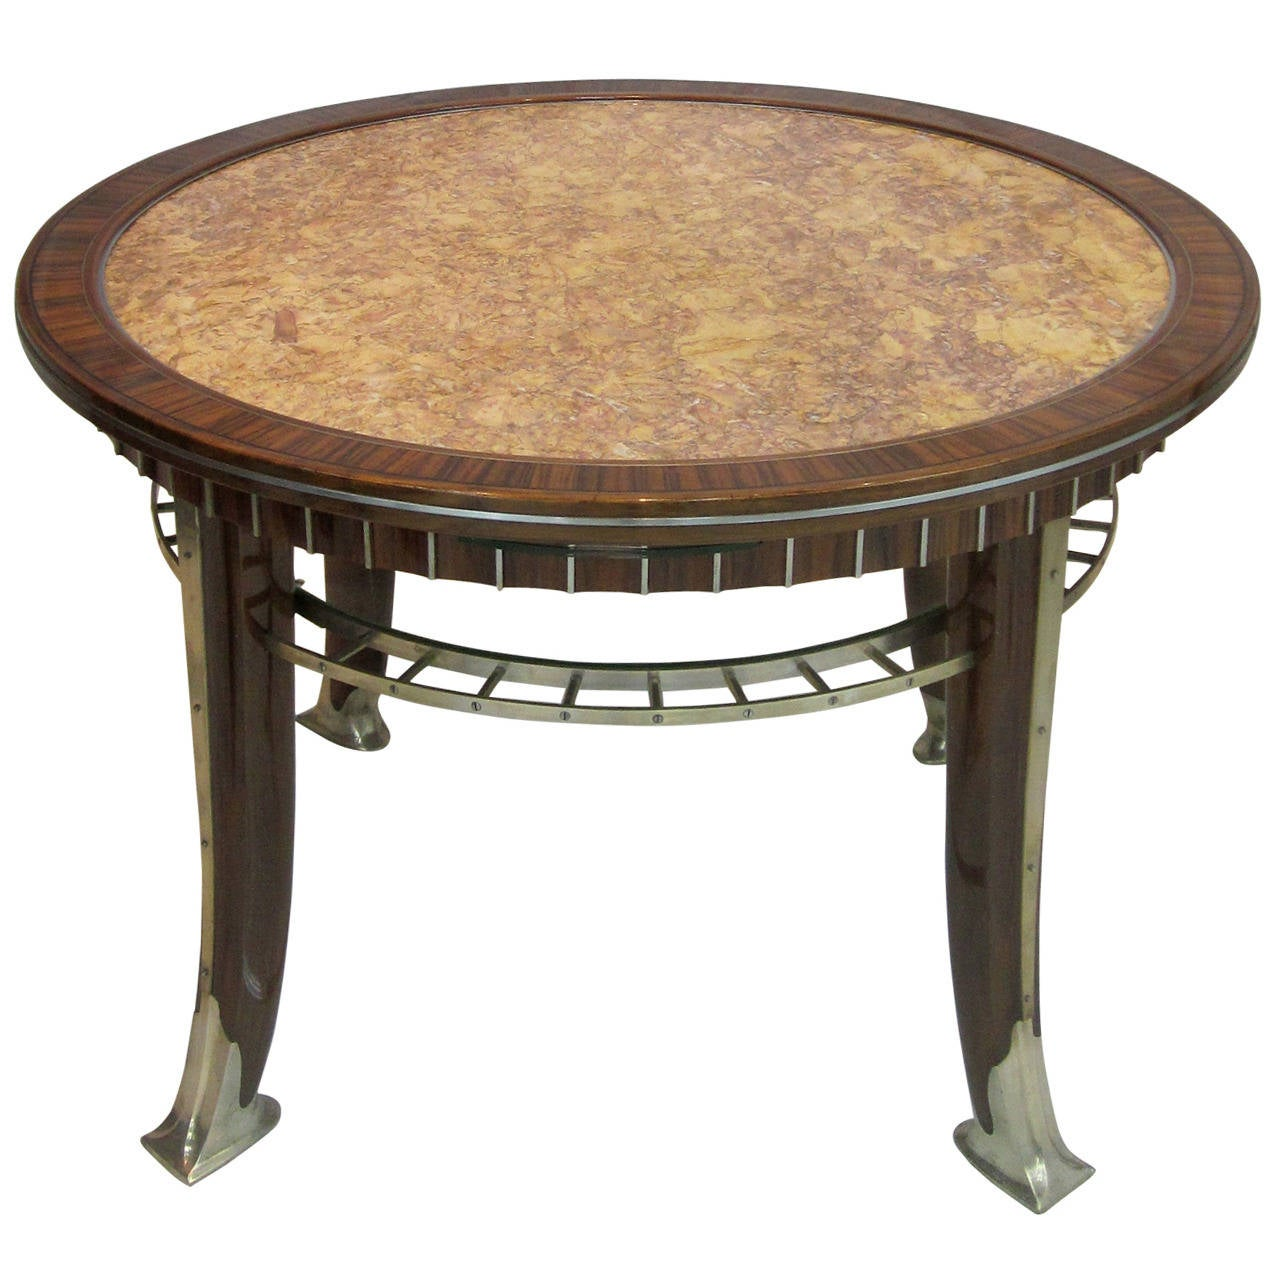 Modernist French Art Deco Cocktail Table By Djo Bourgeois For Sale At 1stdibs